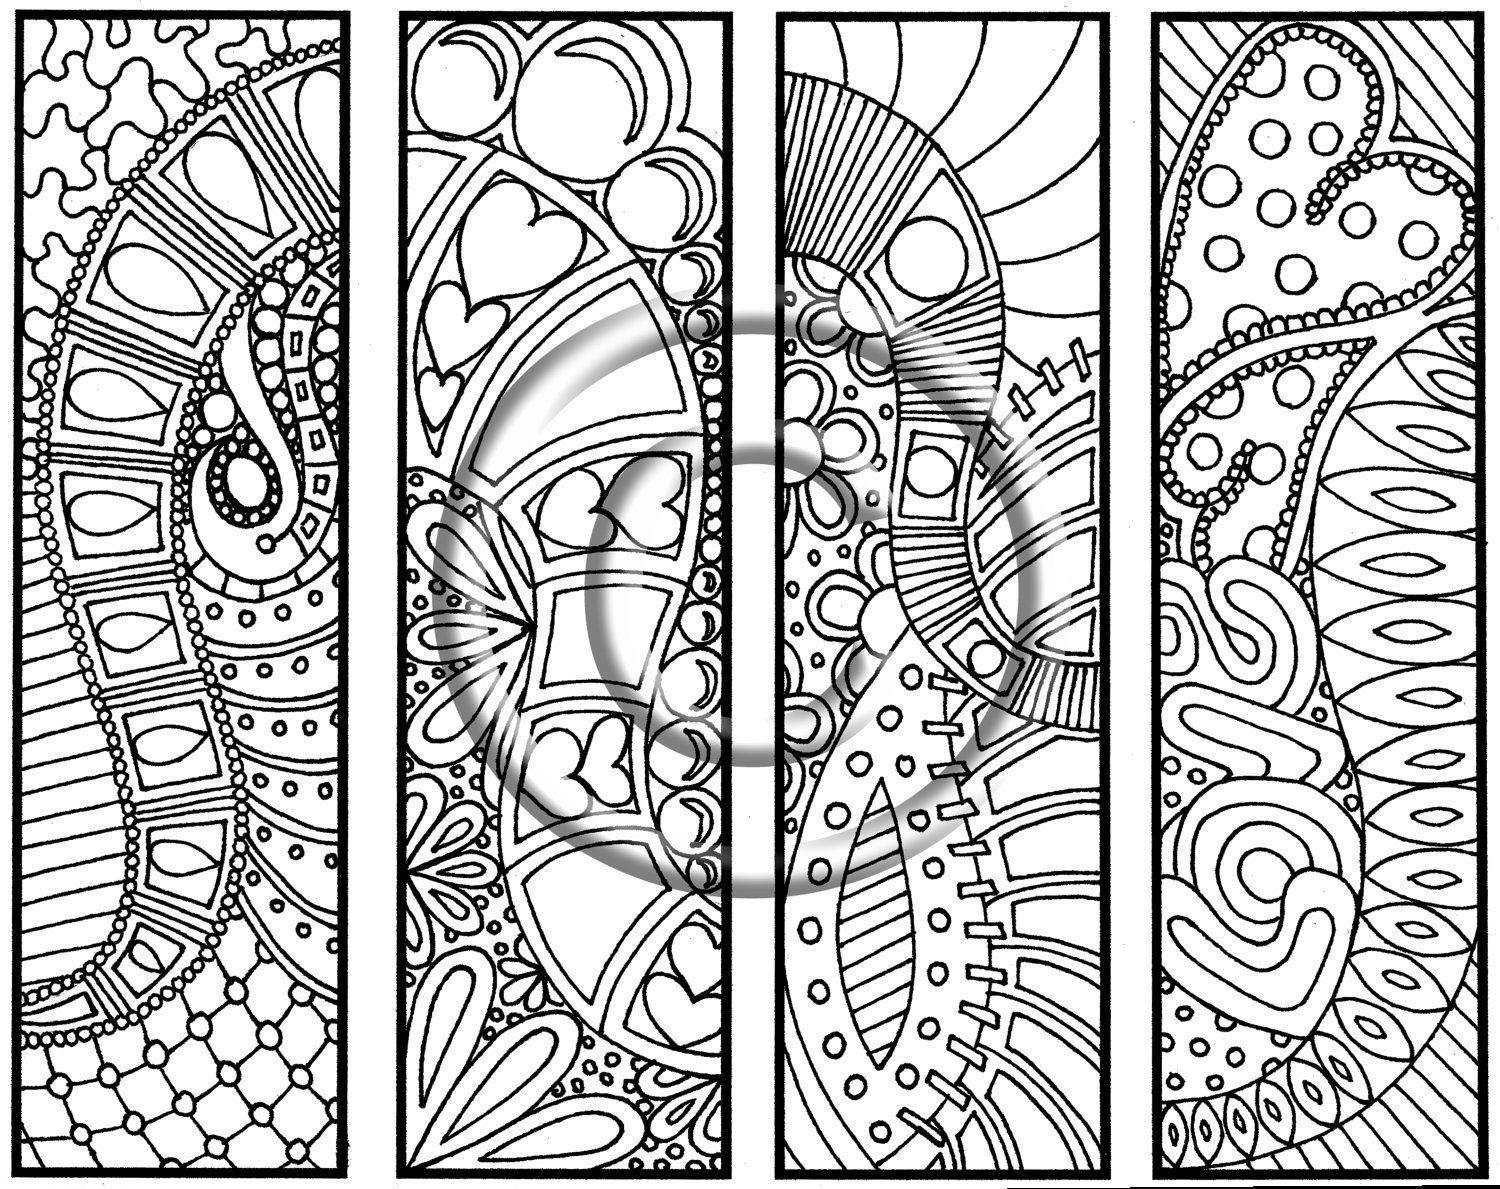 Too Bad That Wattermark Is So Dark That Would Be Awsome Colored W My Sharpies Coloring Bookmarks Coloring Pages Free Printable Bookmarks